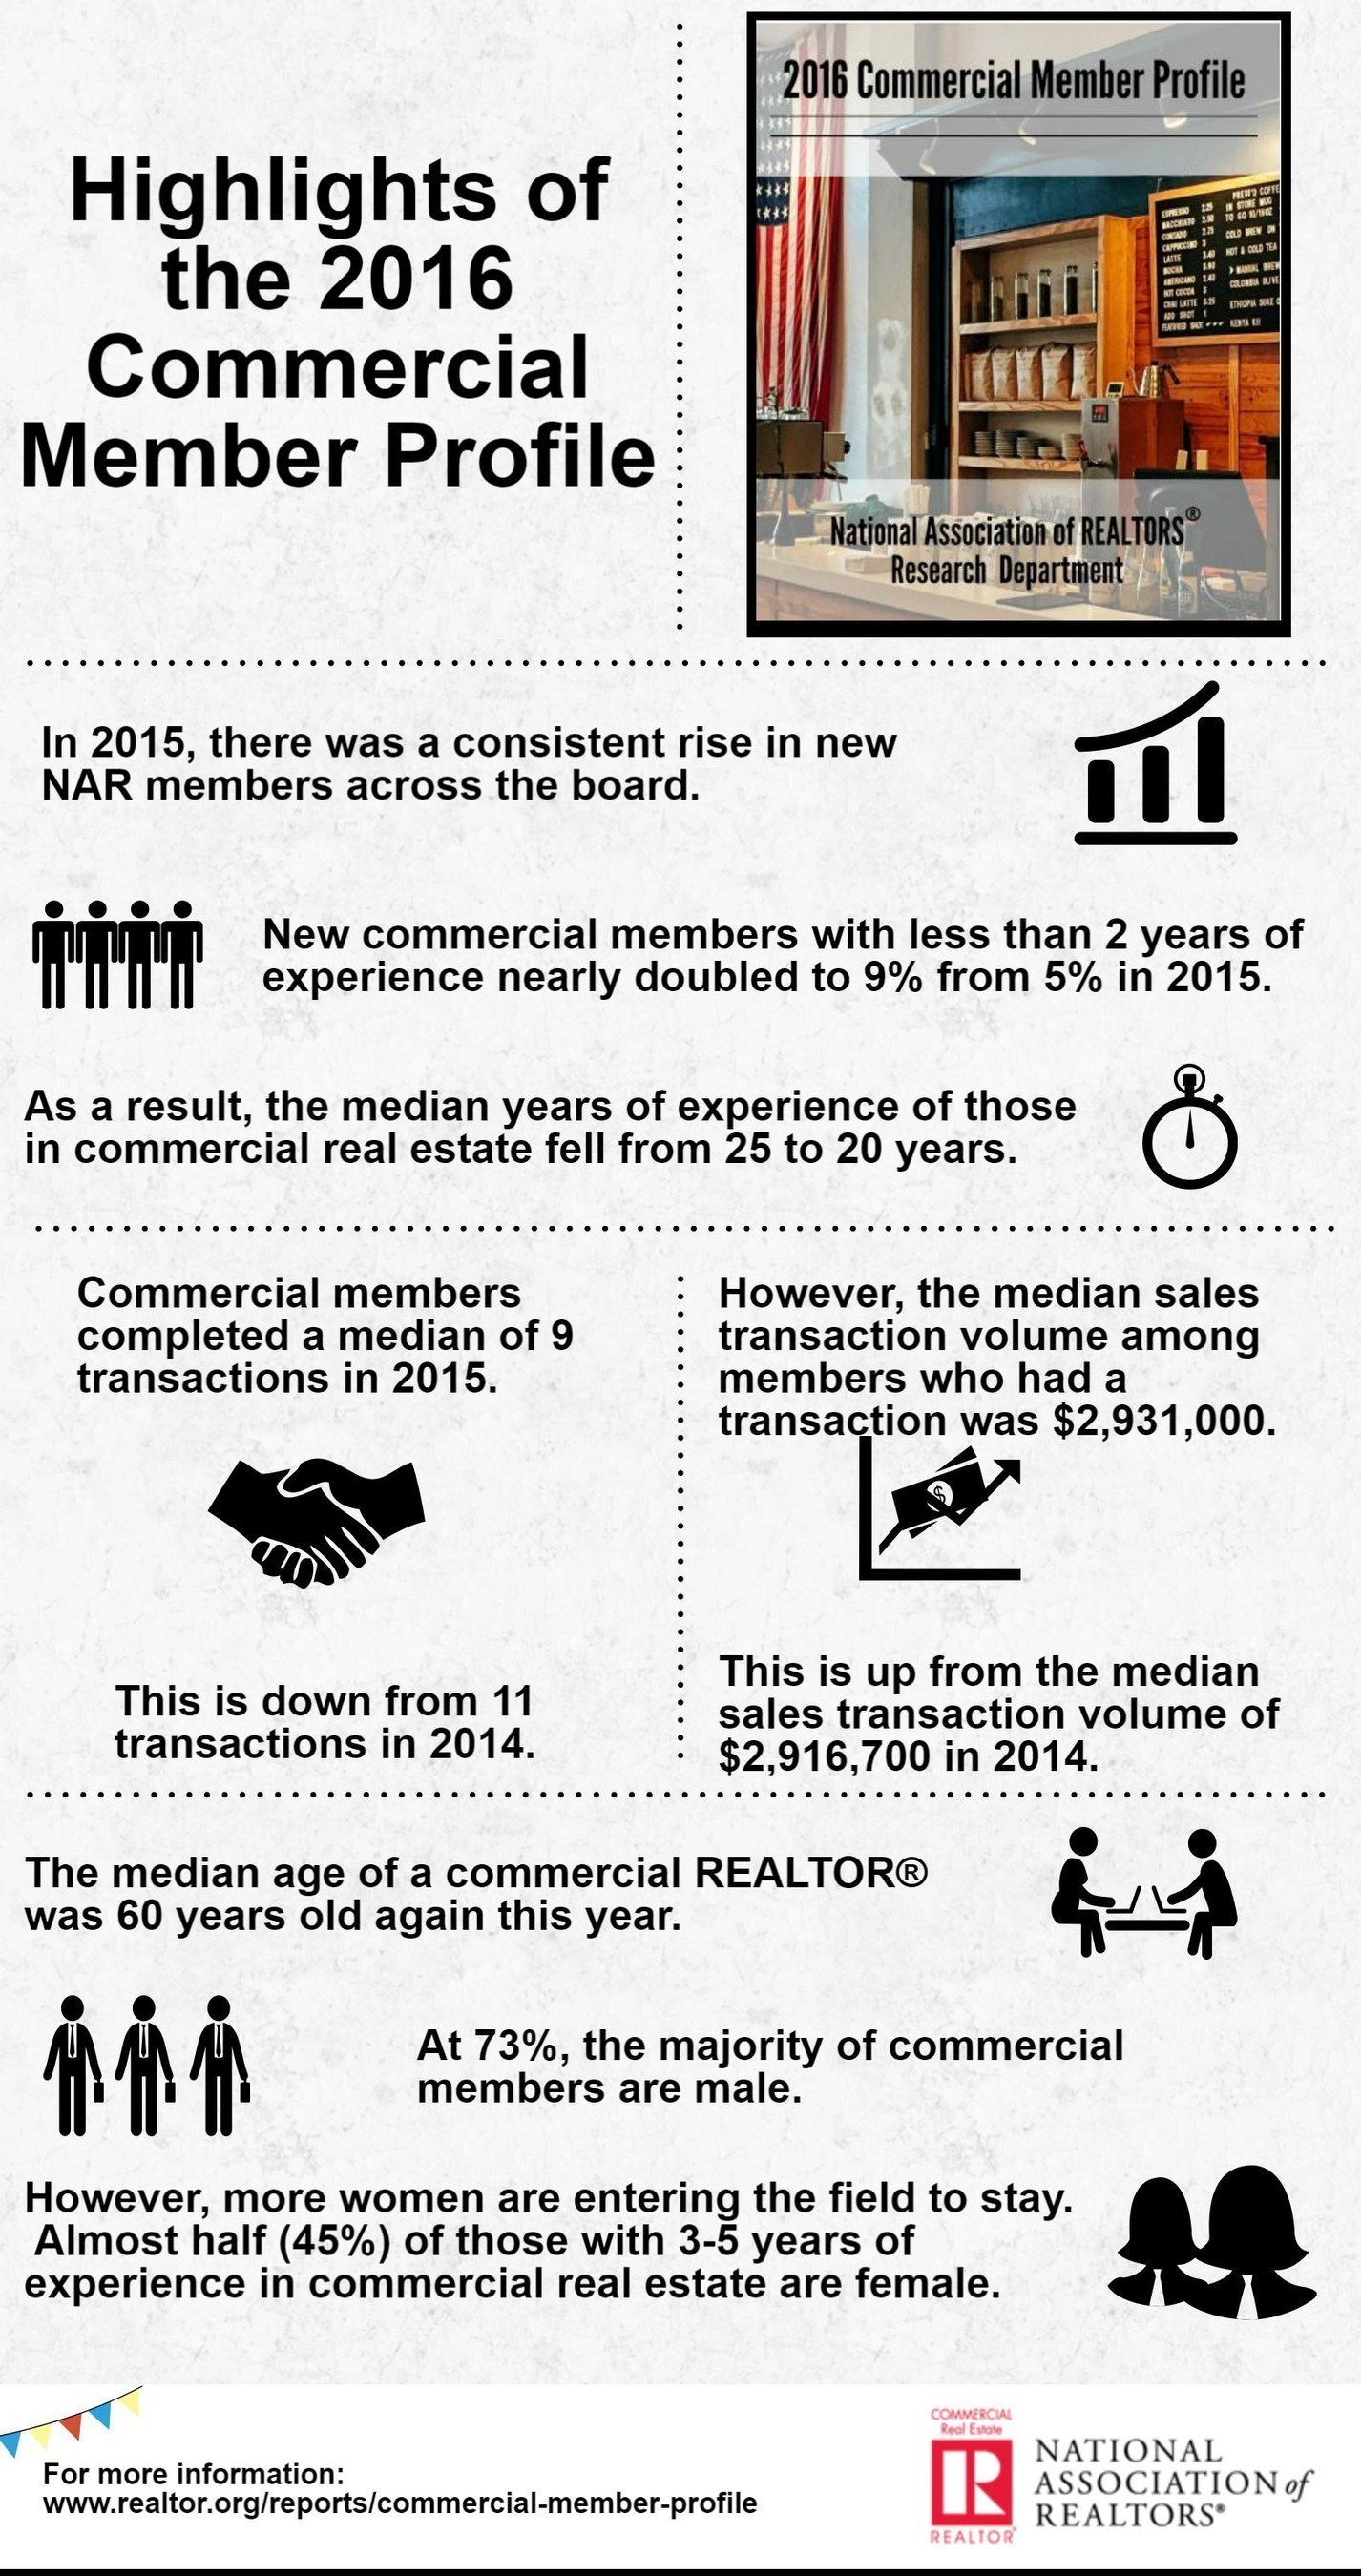 The median annual income and number of sales transactions of National Association of Realtors commercial members decreased slightly as the number of new commercial members significantly increased in 2015, according to the 2016 NAR Commercial Member Profile.